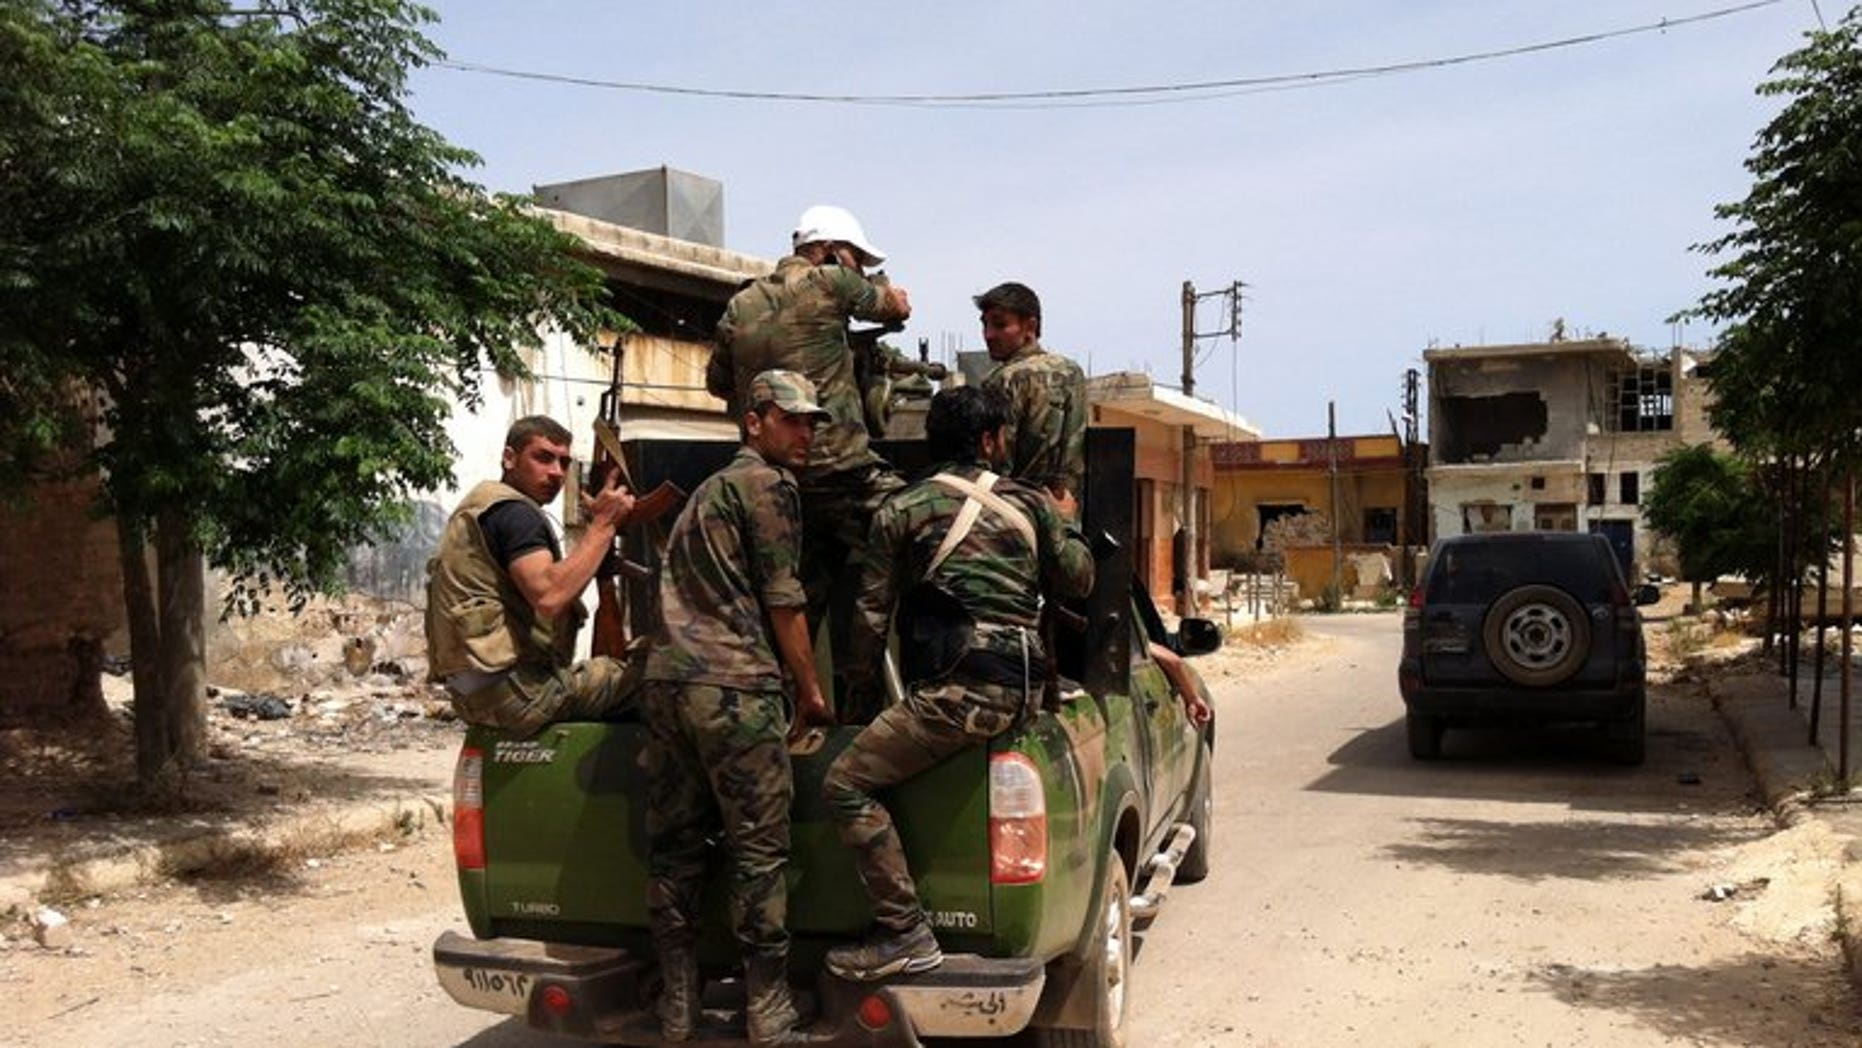 Syrian army soldiers patrol a street in the village of Buweida, north of Qusayr, in Syria's central Homs province, on June 8, 2013. Members of a Syrian pro-regime militia gunned down seven Sunni men working on reconciliation in the central province of Homs overnight, the Syrian Observatory for Human Rights said on Tuesday.